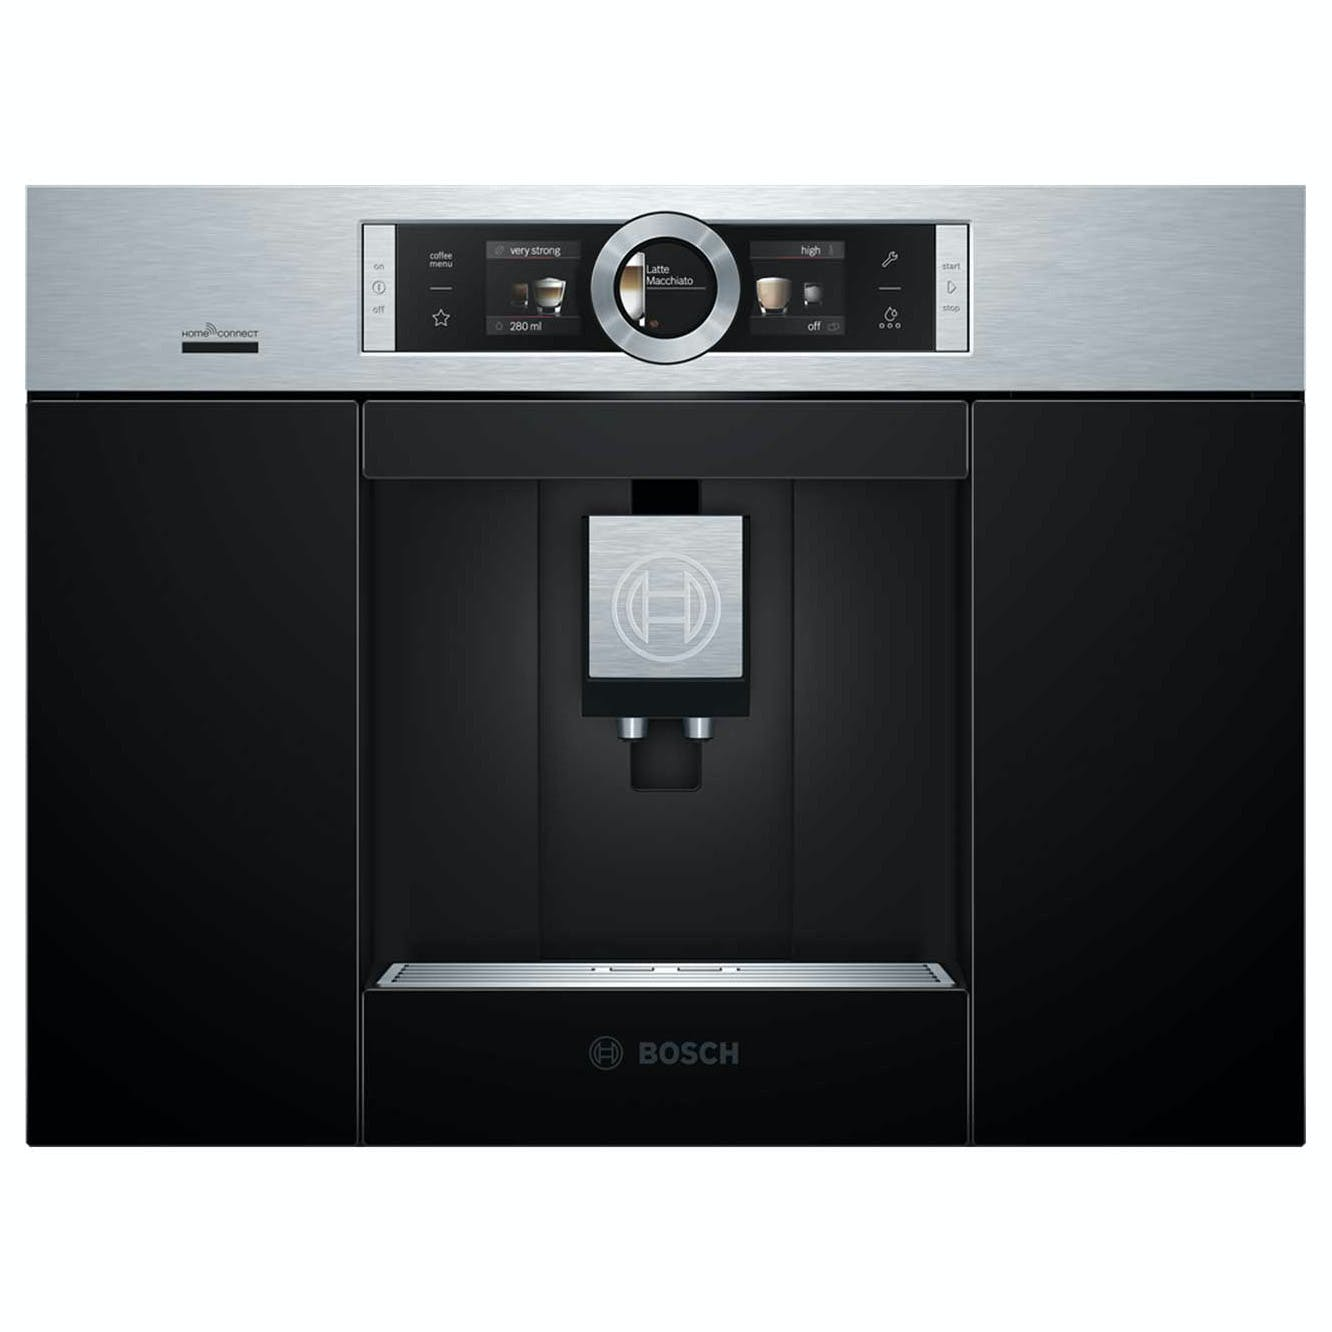 Bosch CTL636ES6 Serie 8 Built In Fully Automatic Coffee Centre in BrSt